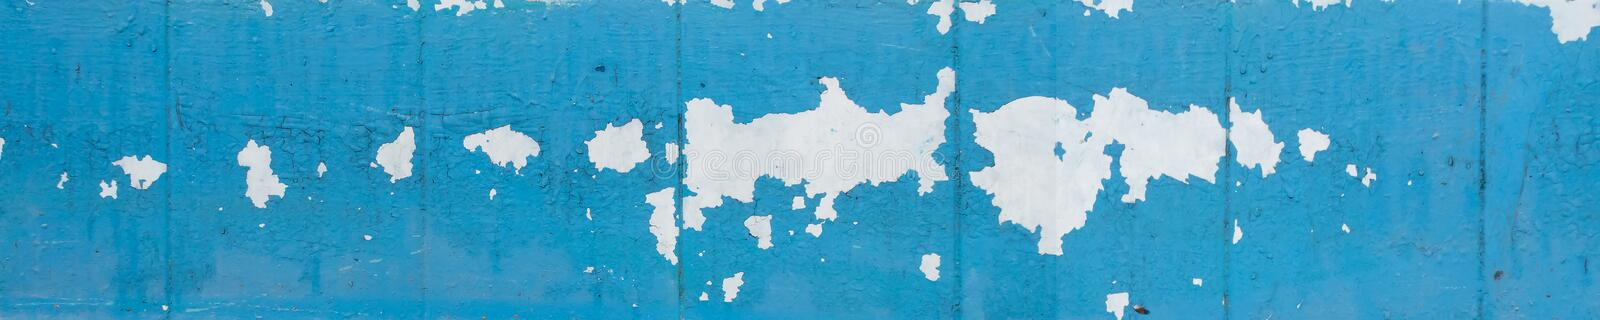 Wall with old peeling blue paint. Texture of old peeling paint, vintage graffiti background, it`s time to make repairs, cracked paint texture.  Clipart stock photo